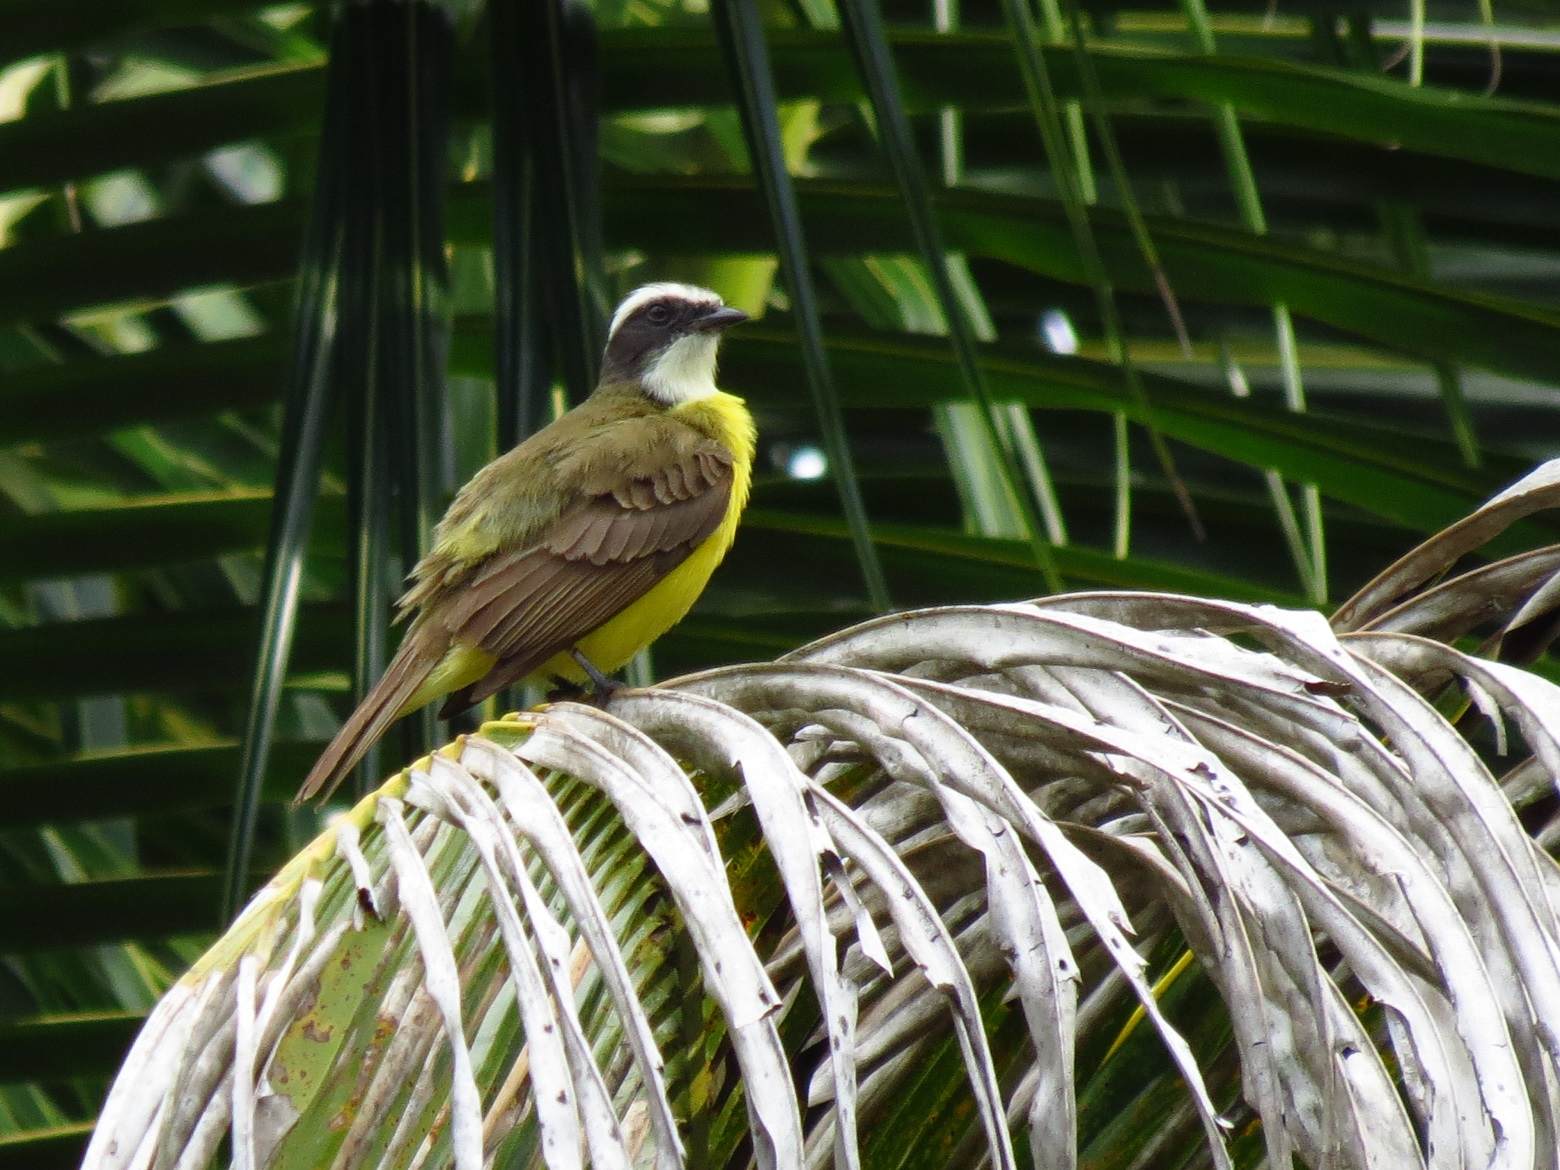 The Social Flycatcher At 63 To 7inches Is Smallest Out Three Flycatchers That Look Similar They Are Great Kiskadee And